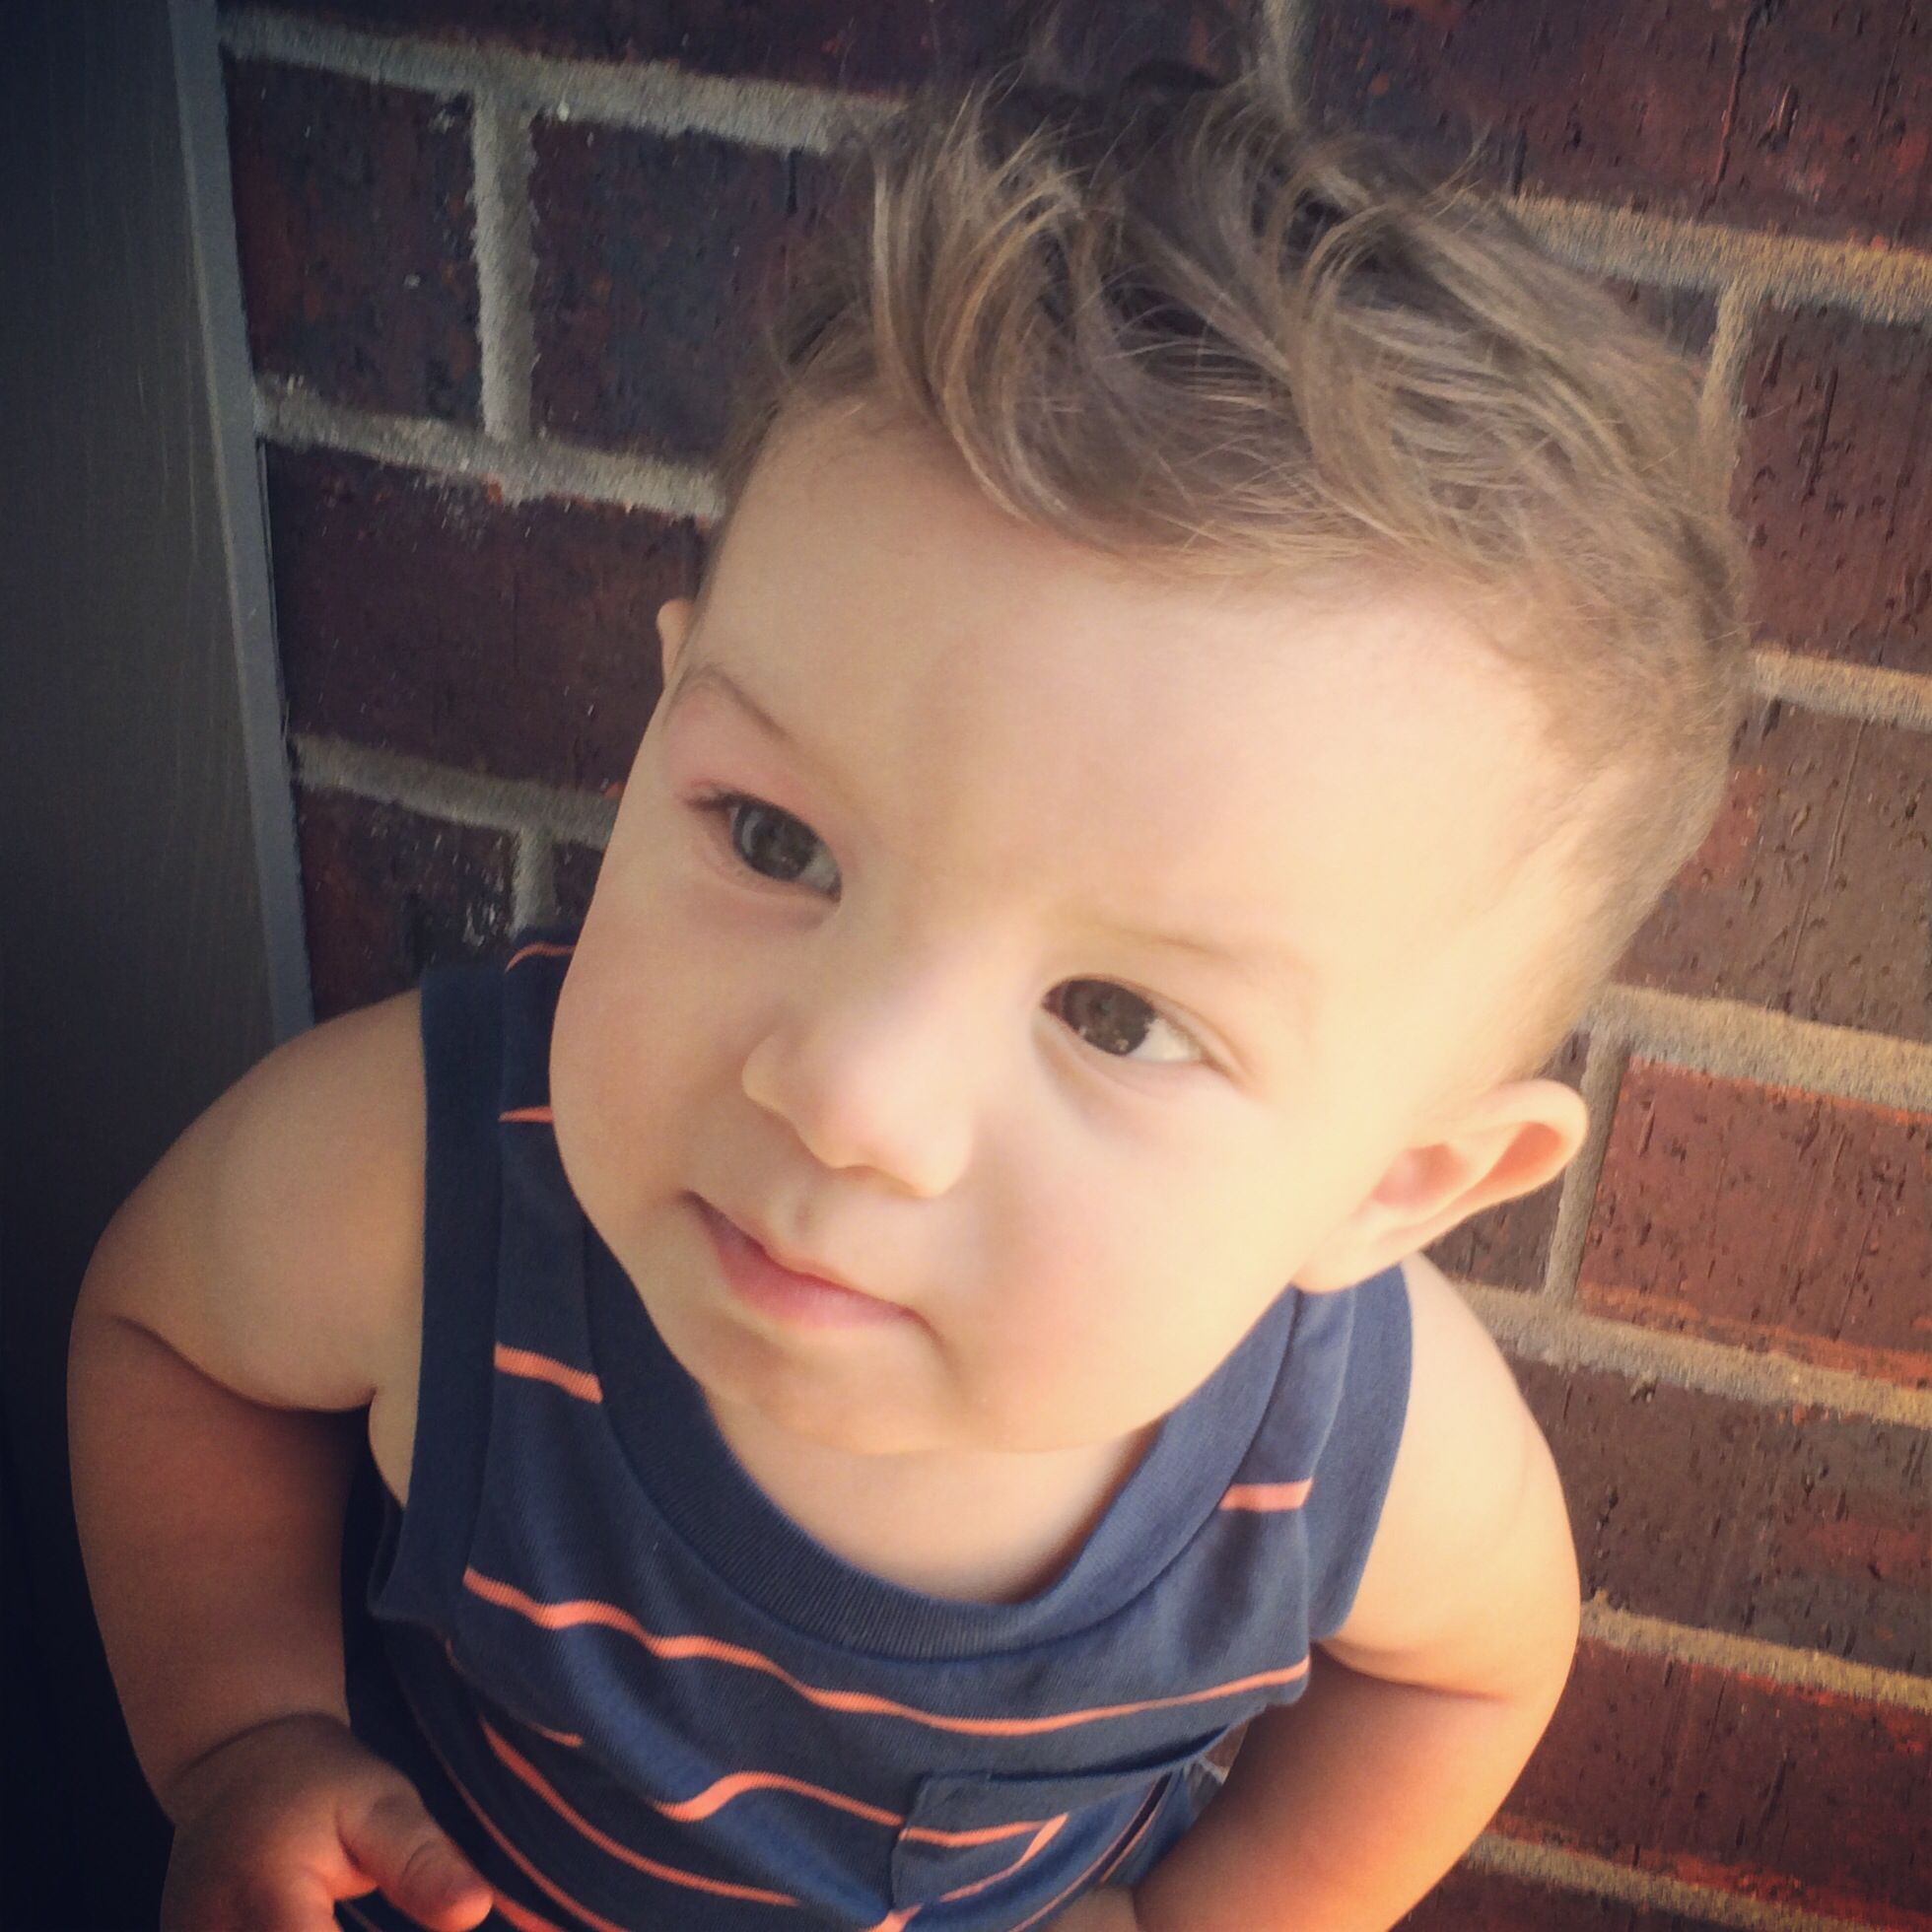 Baby Boy Haircut Styles And Fashion Ideas 2014 Baby